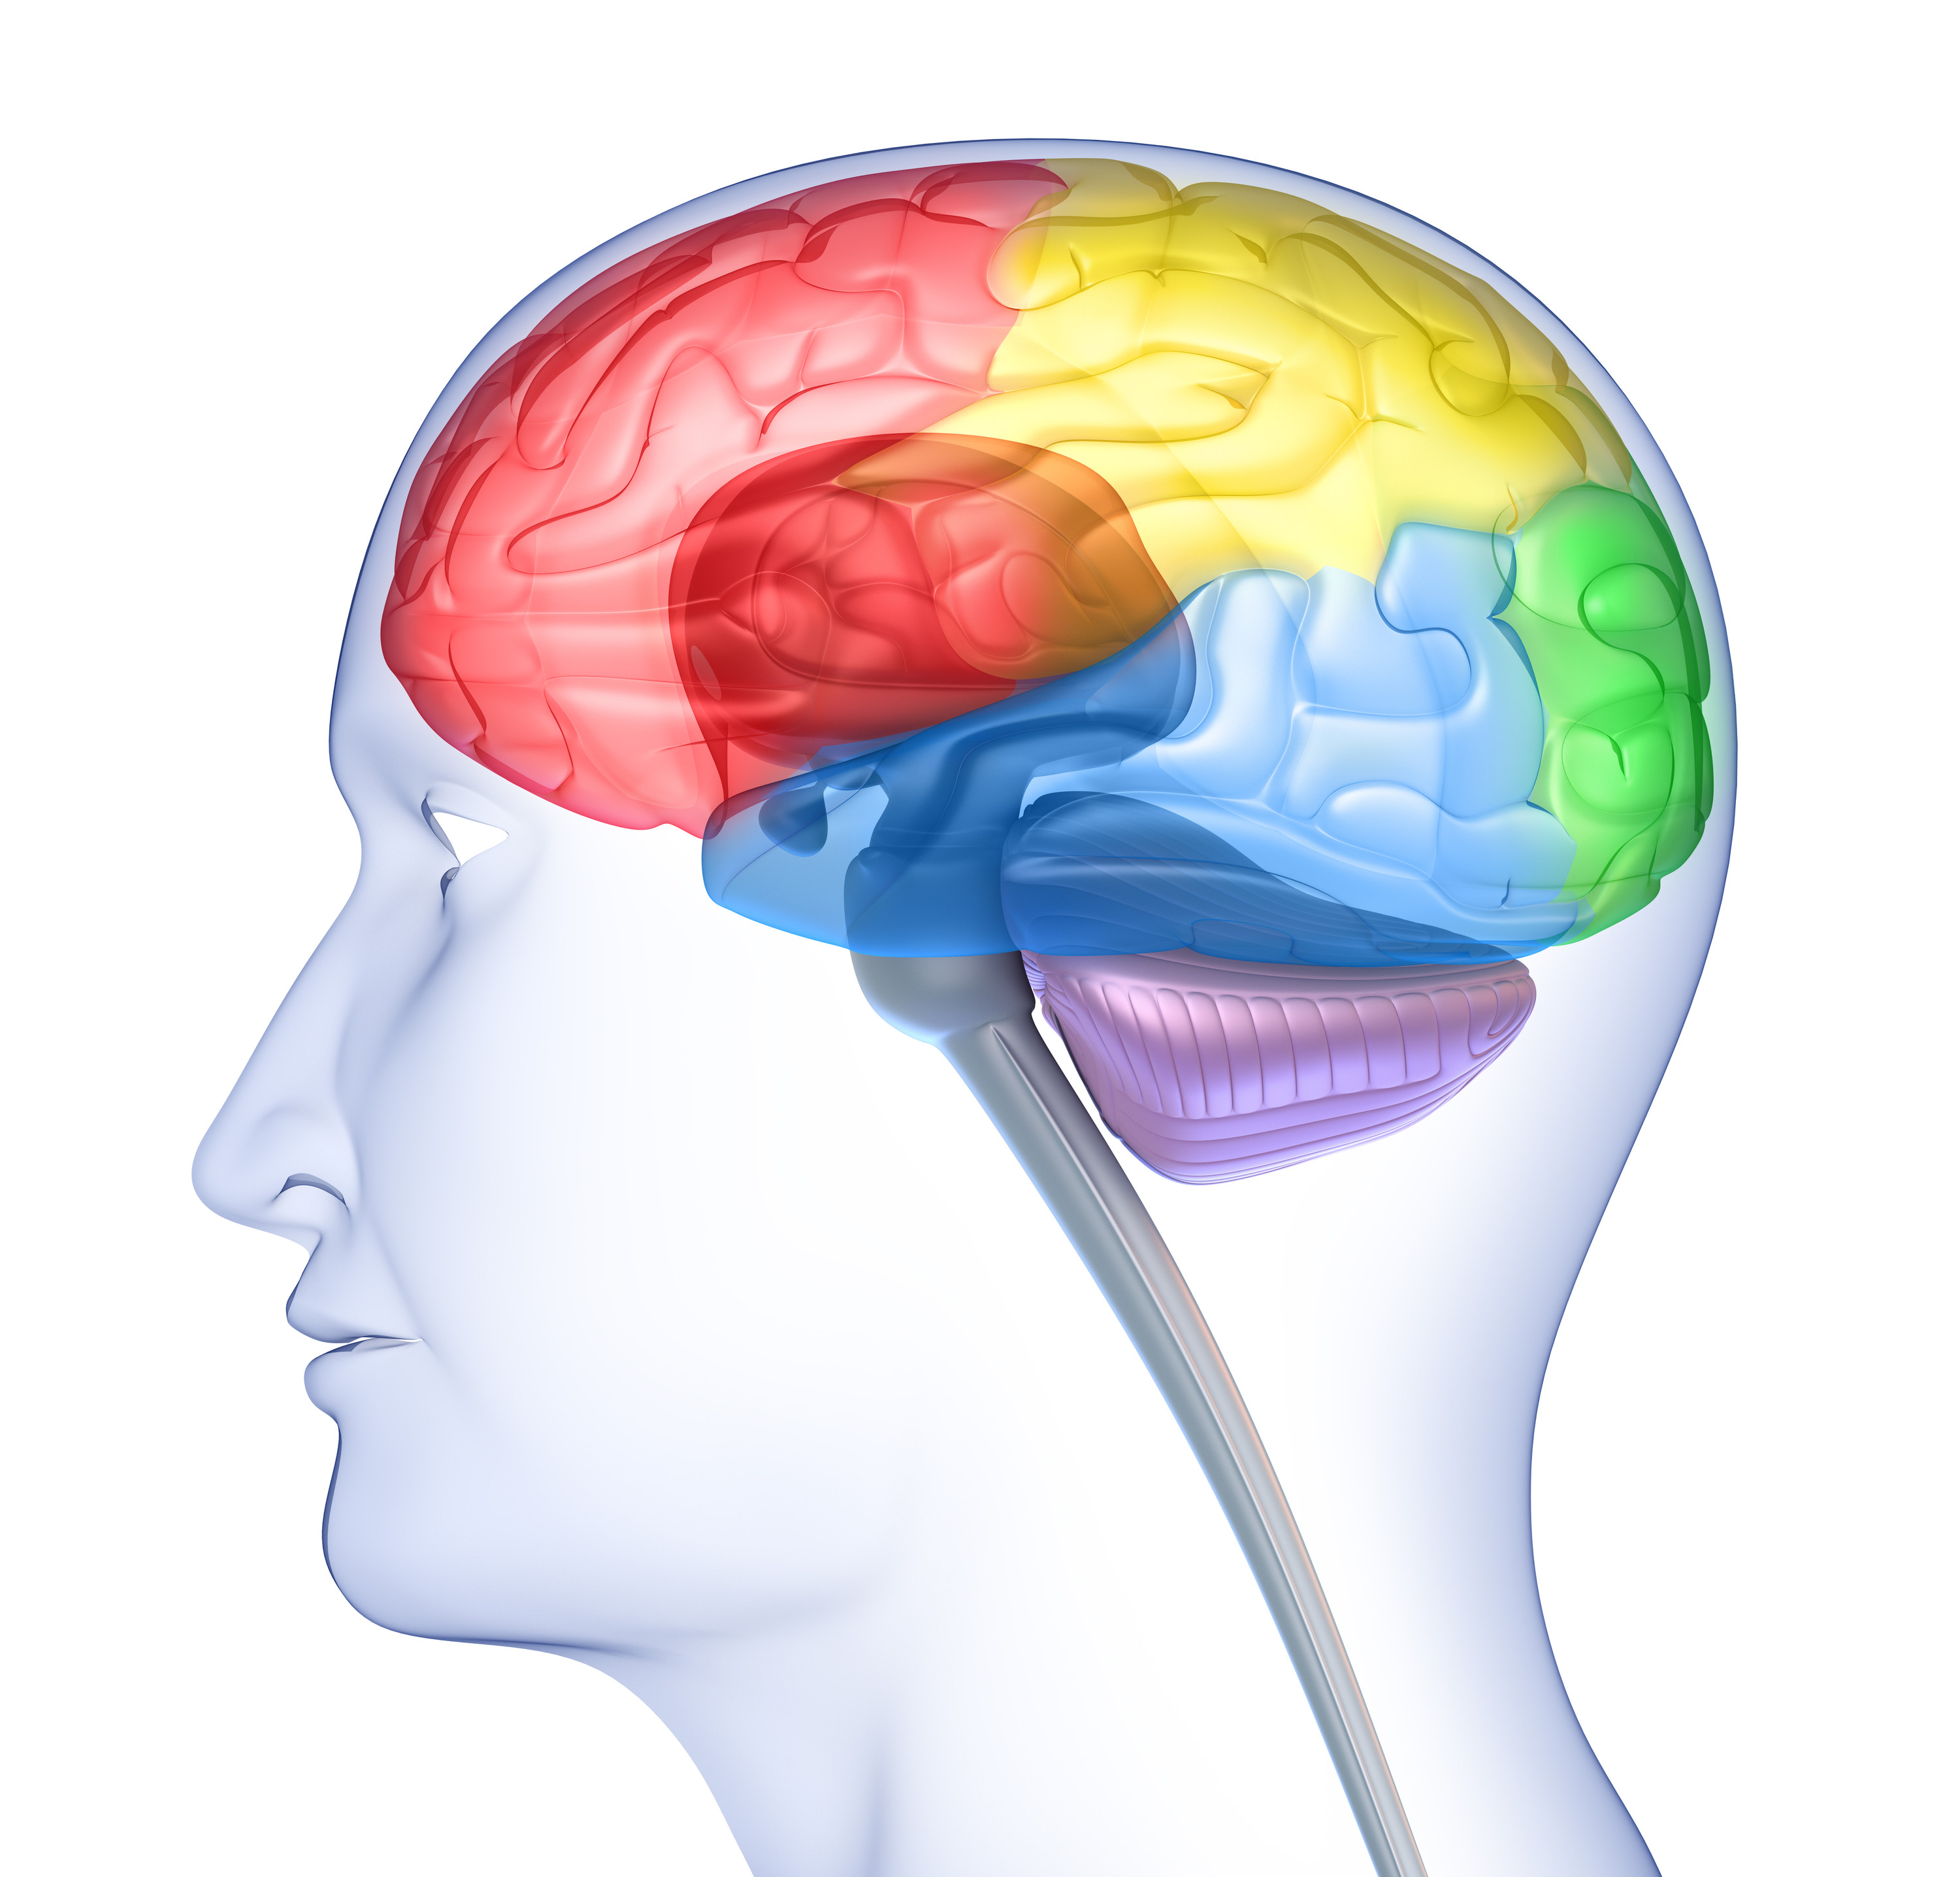 065 The Anatomy And Functions Of The Frontal Lobe